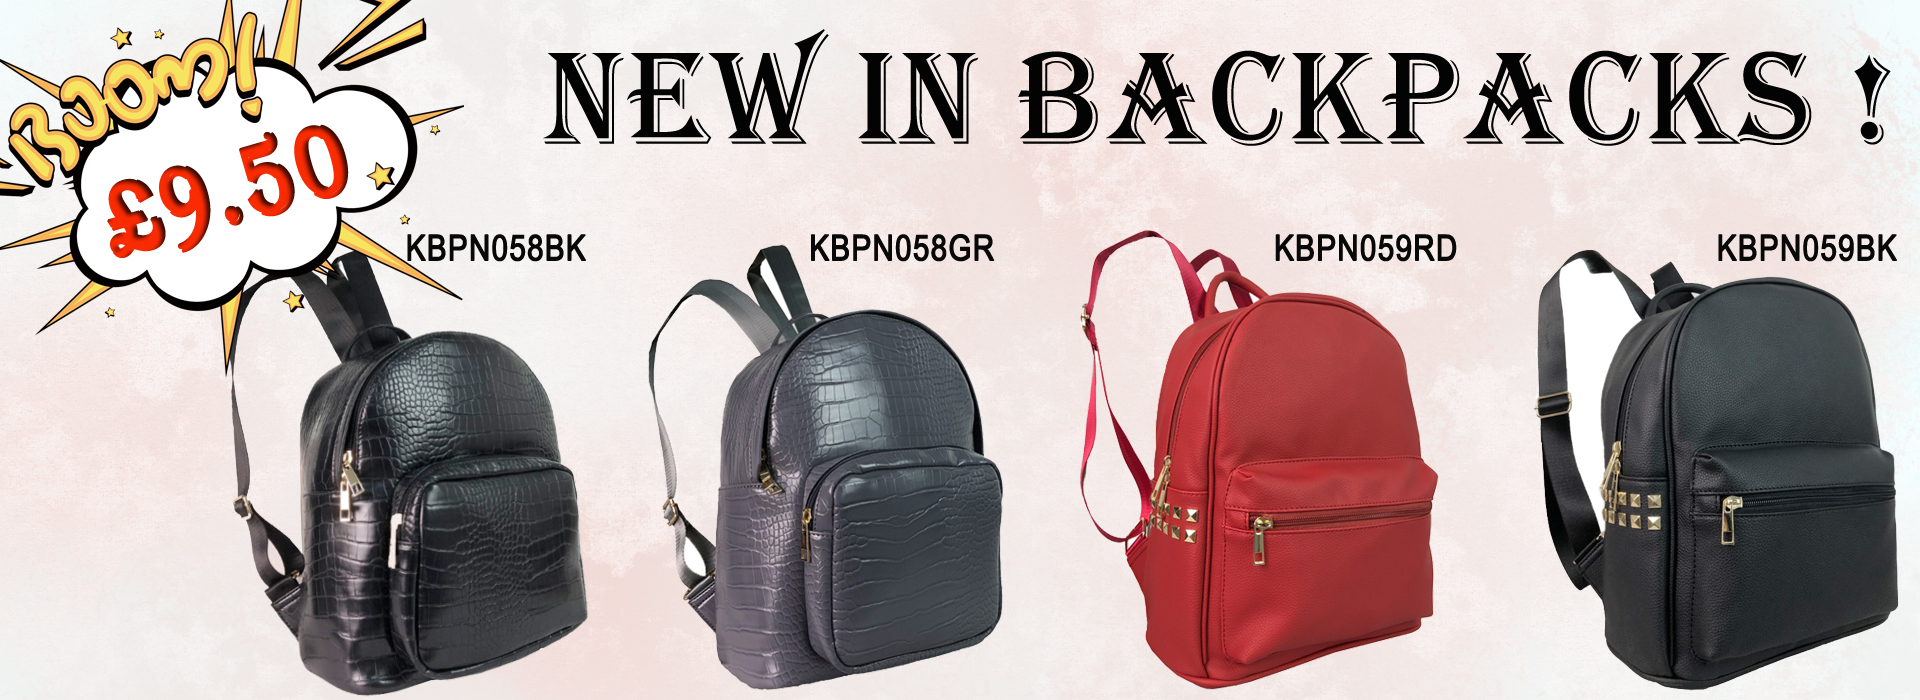 New_in_backpacks